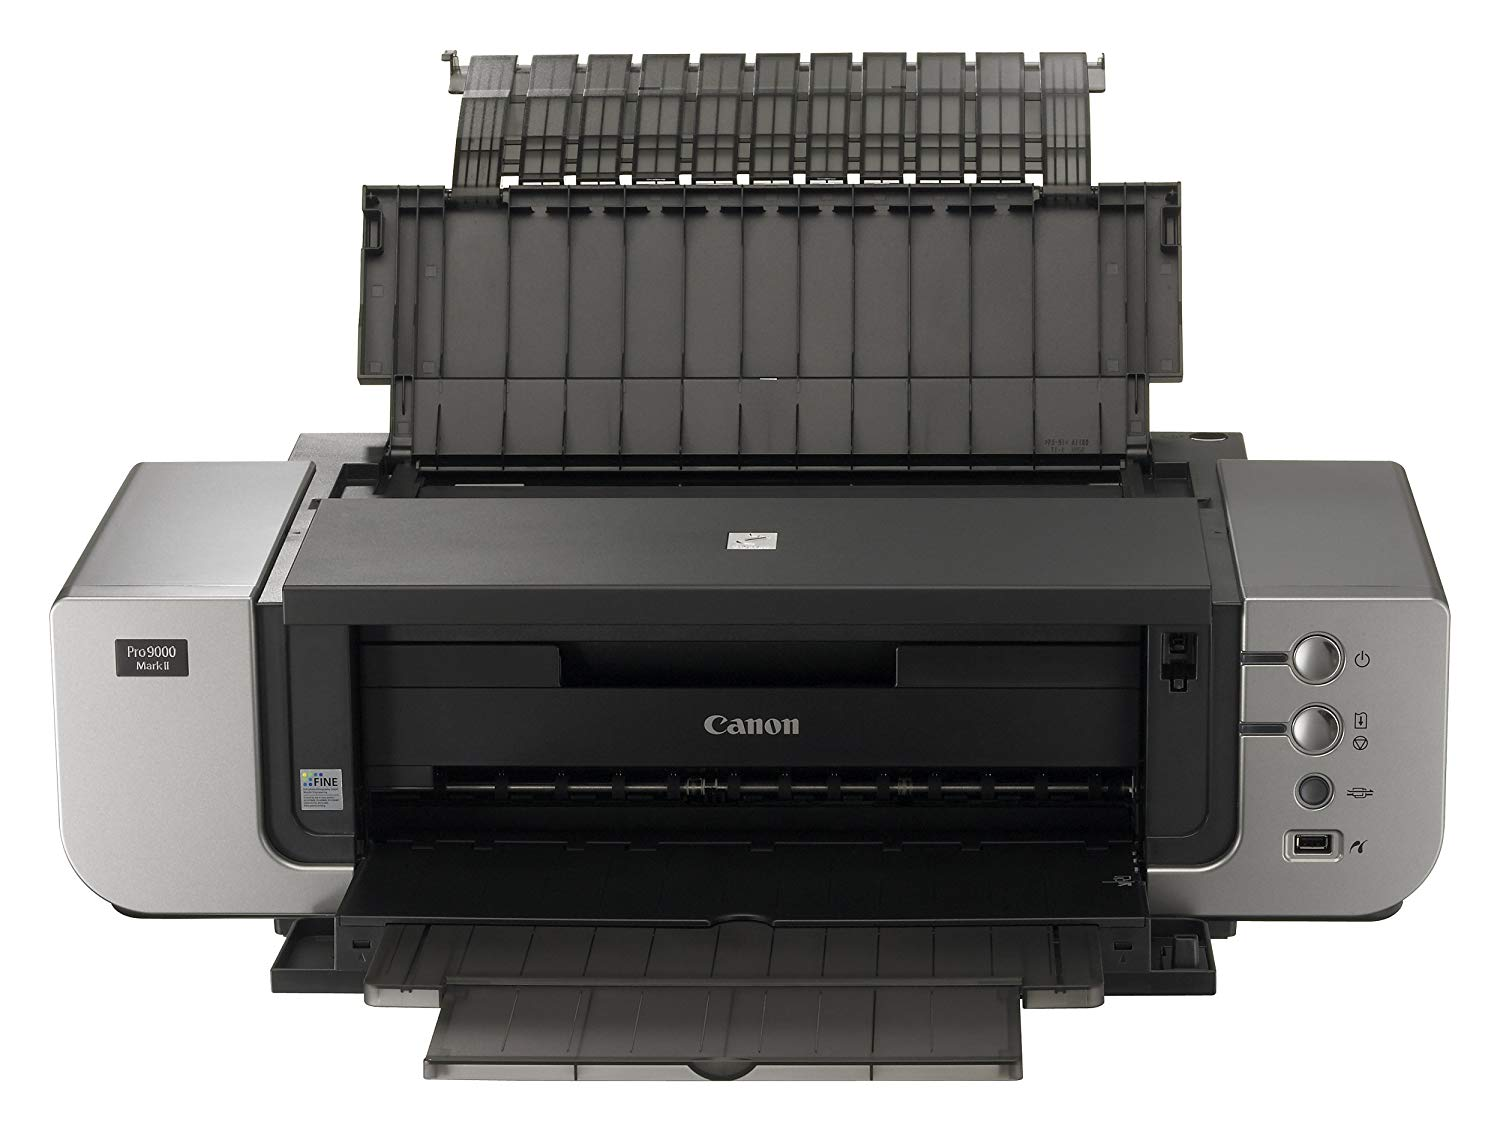 Canon PIXMA Pro9500 Mark II driver download for linux. jpg